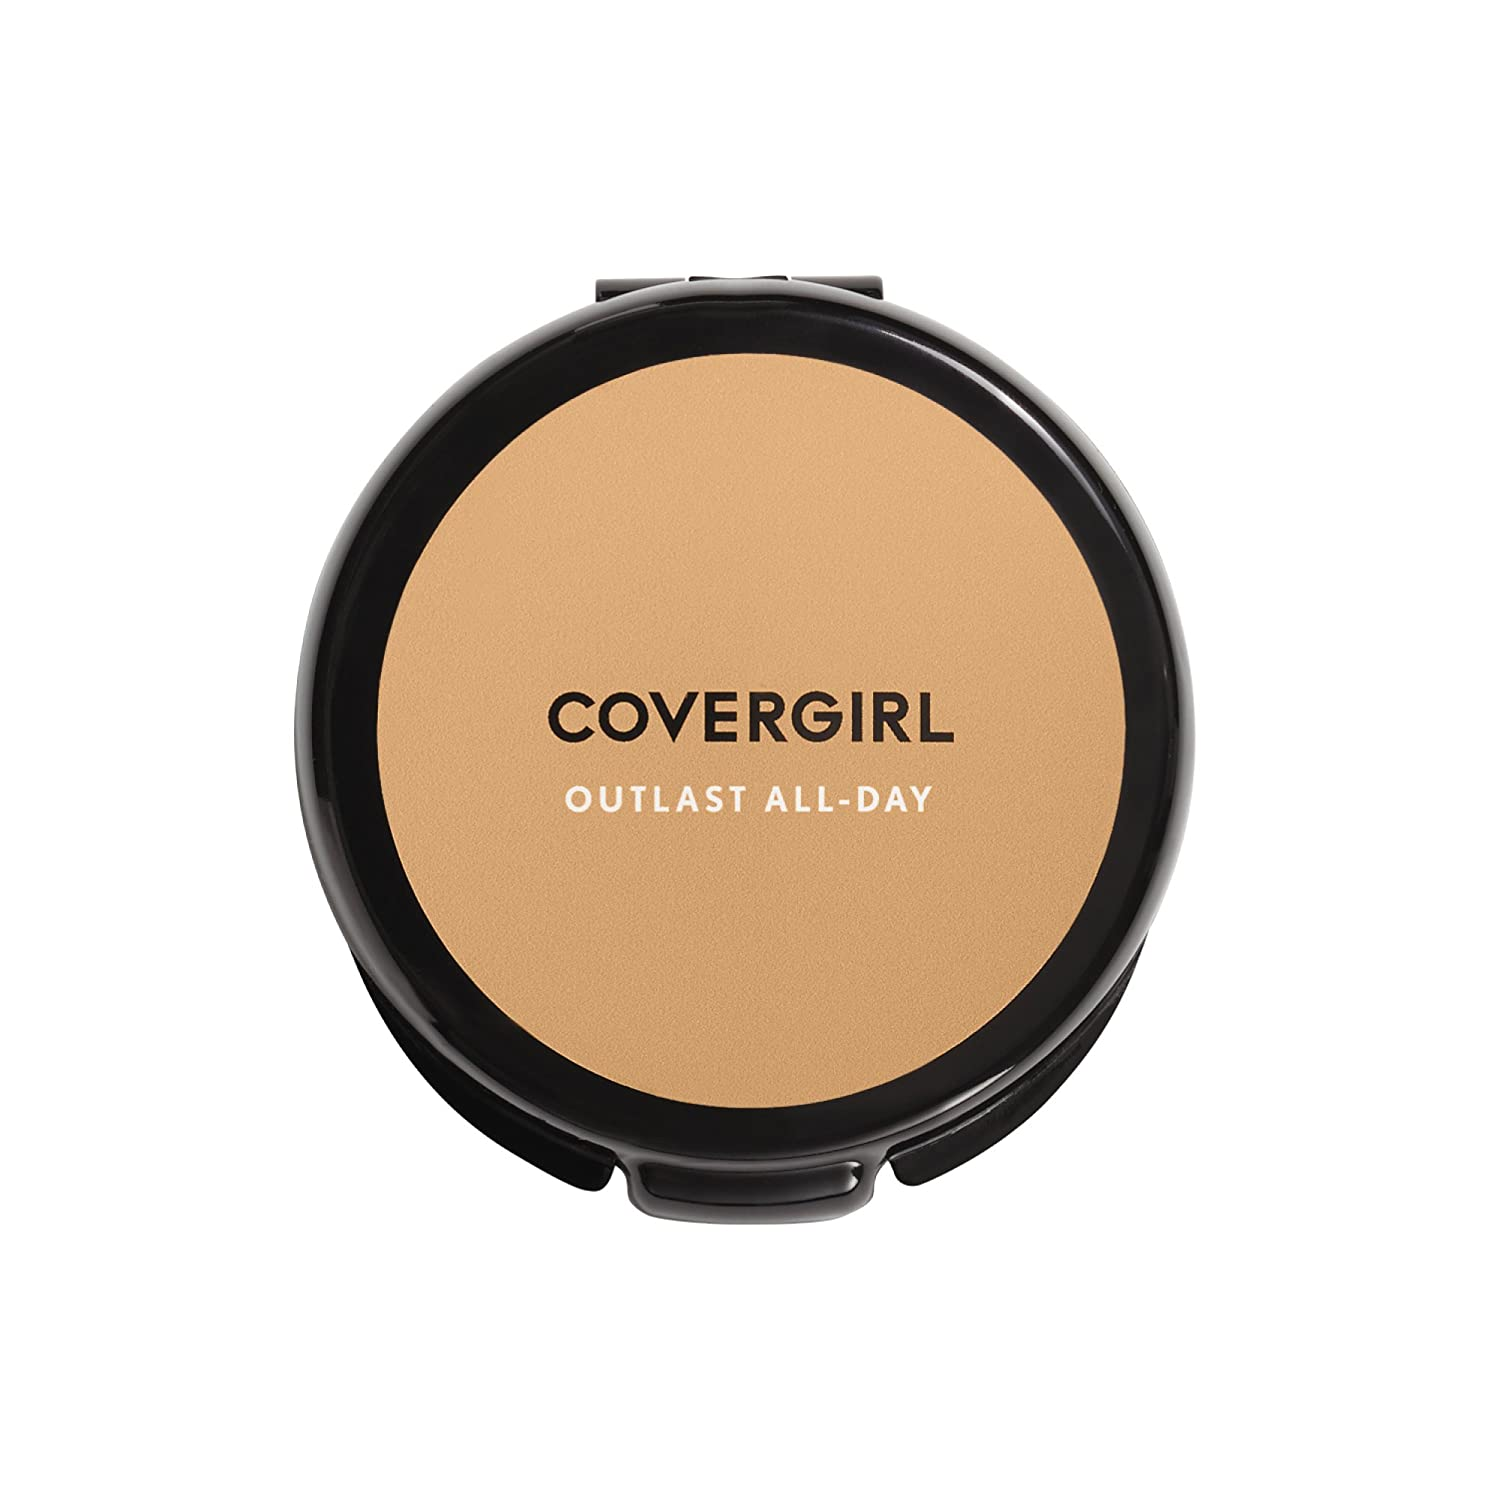 COVERGIRL Outlast All-Day Matte Finishing Powder Light to Medium.39 oz (11 g) (Packaging may vary)